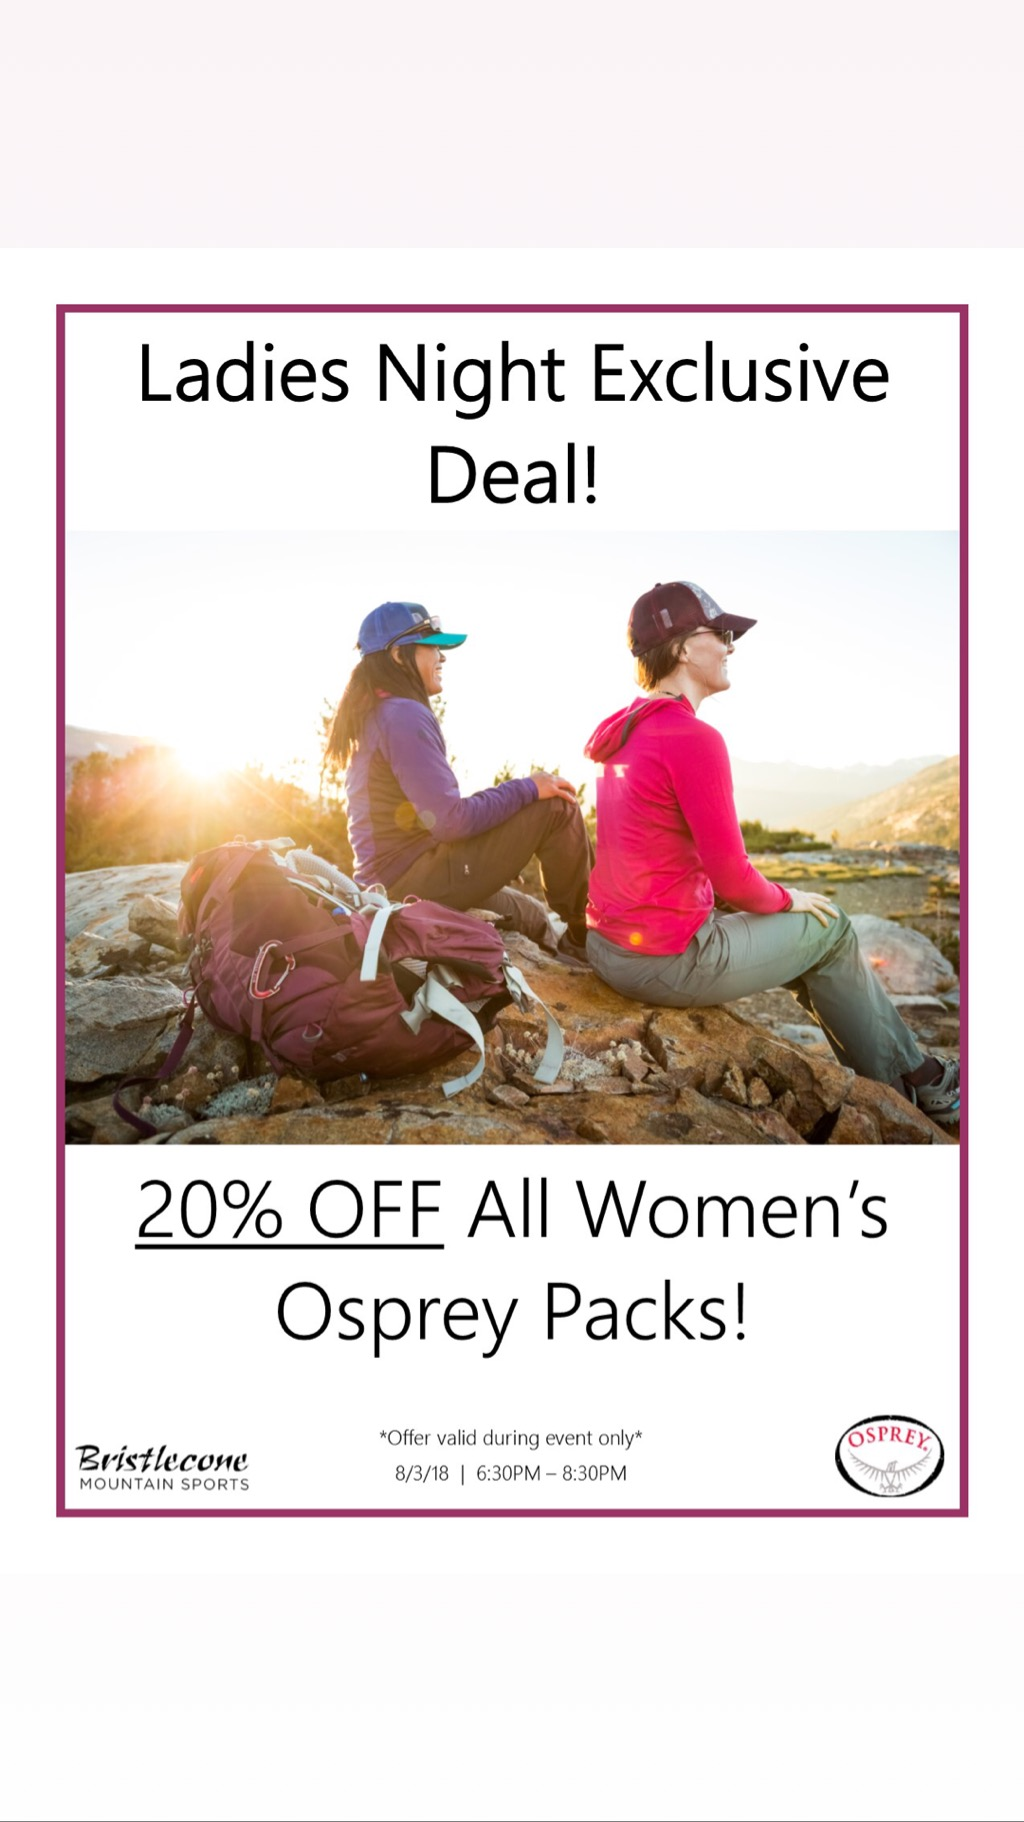 Exclusive Ladies Night Deal! 20% Off Osprey Packs this night only!